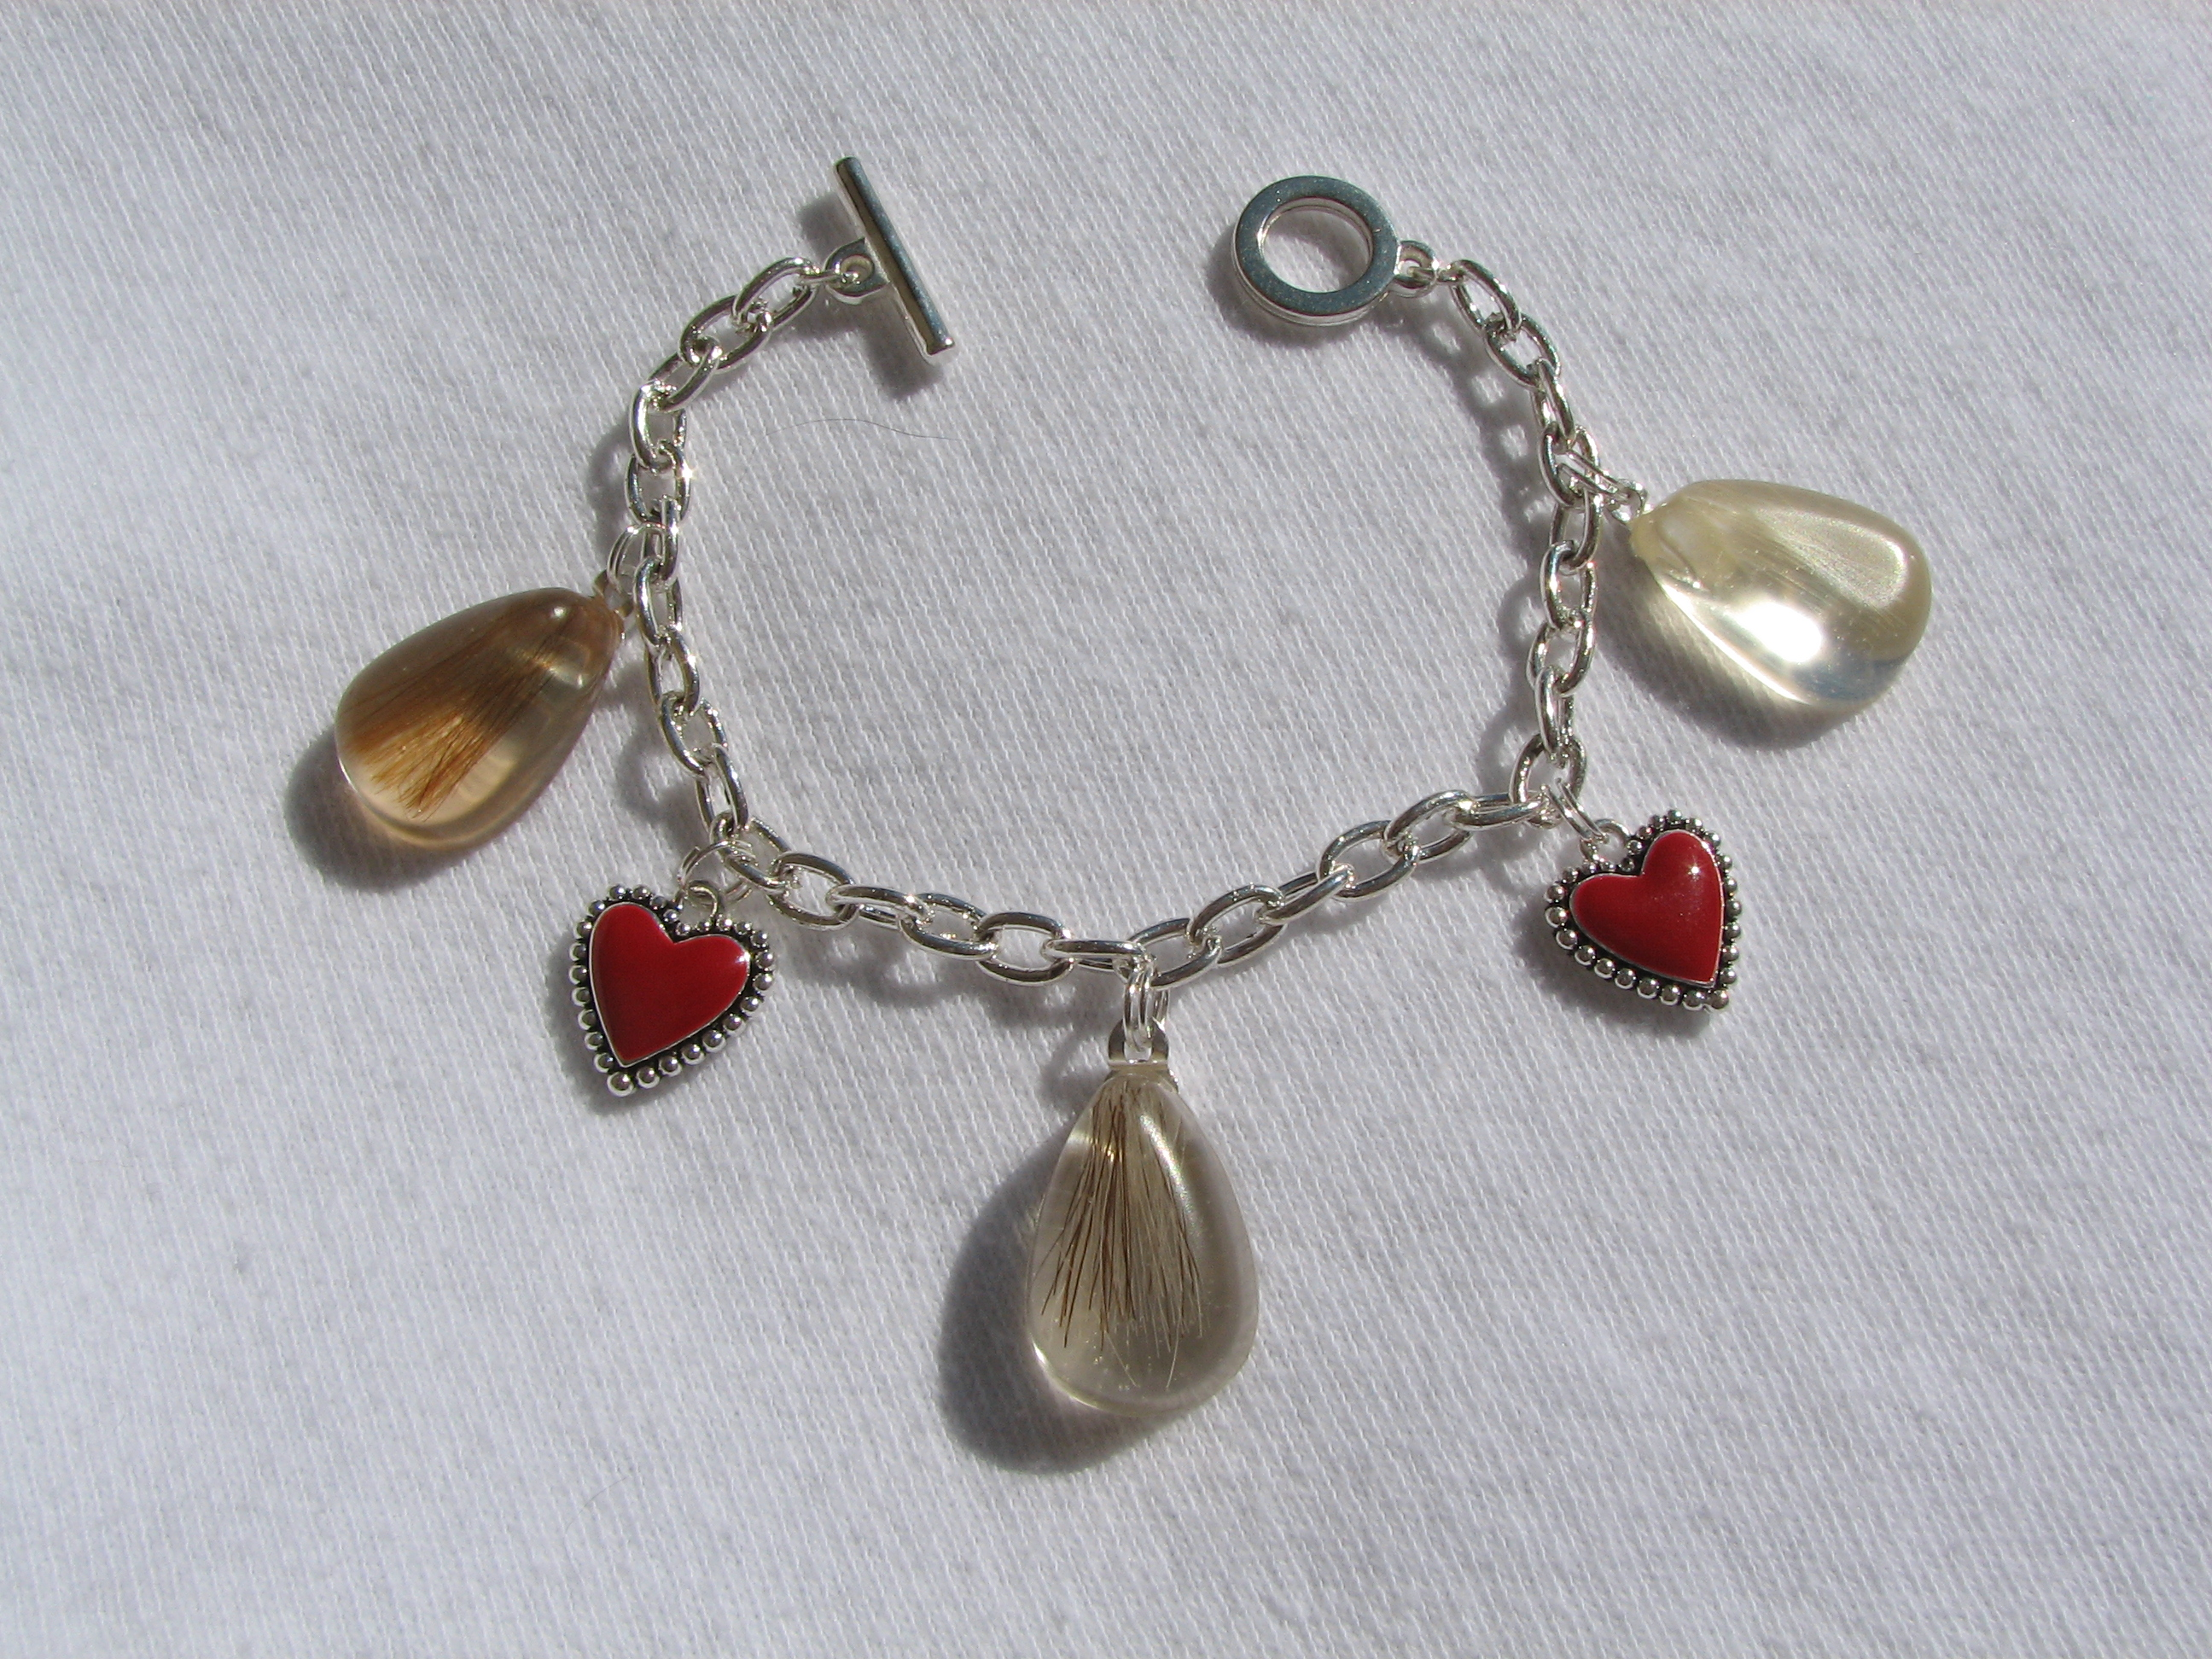 charm bracelet with 3 pendants